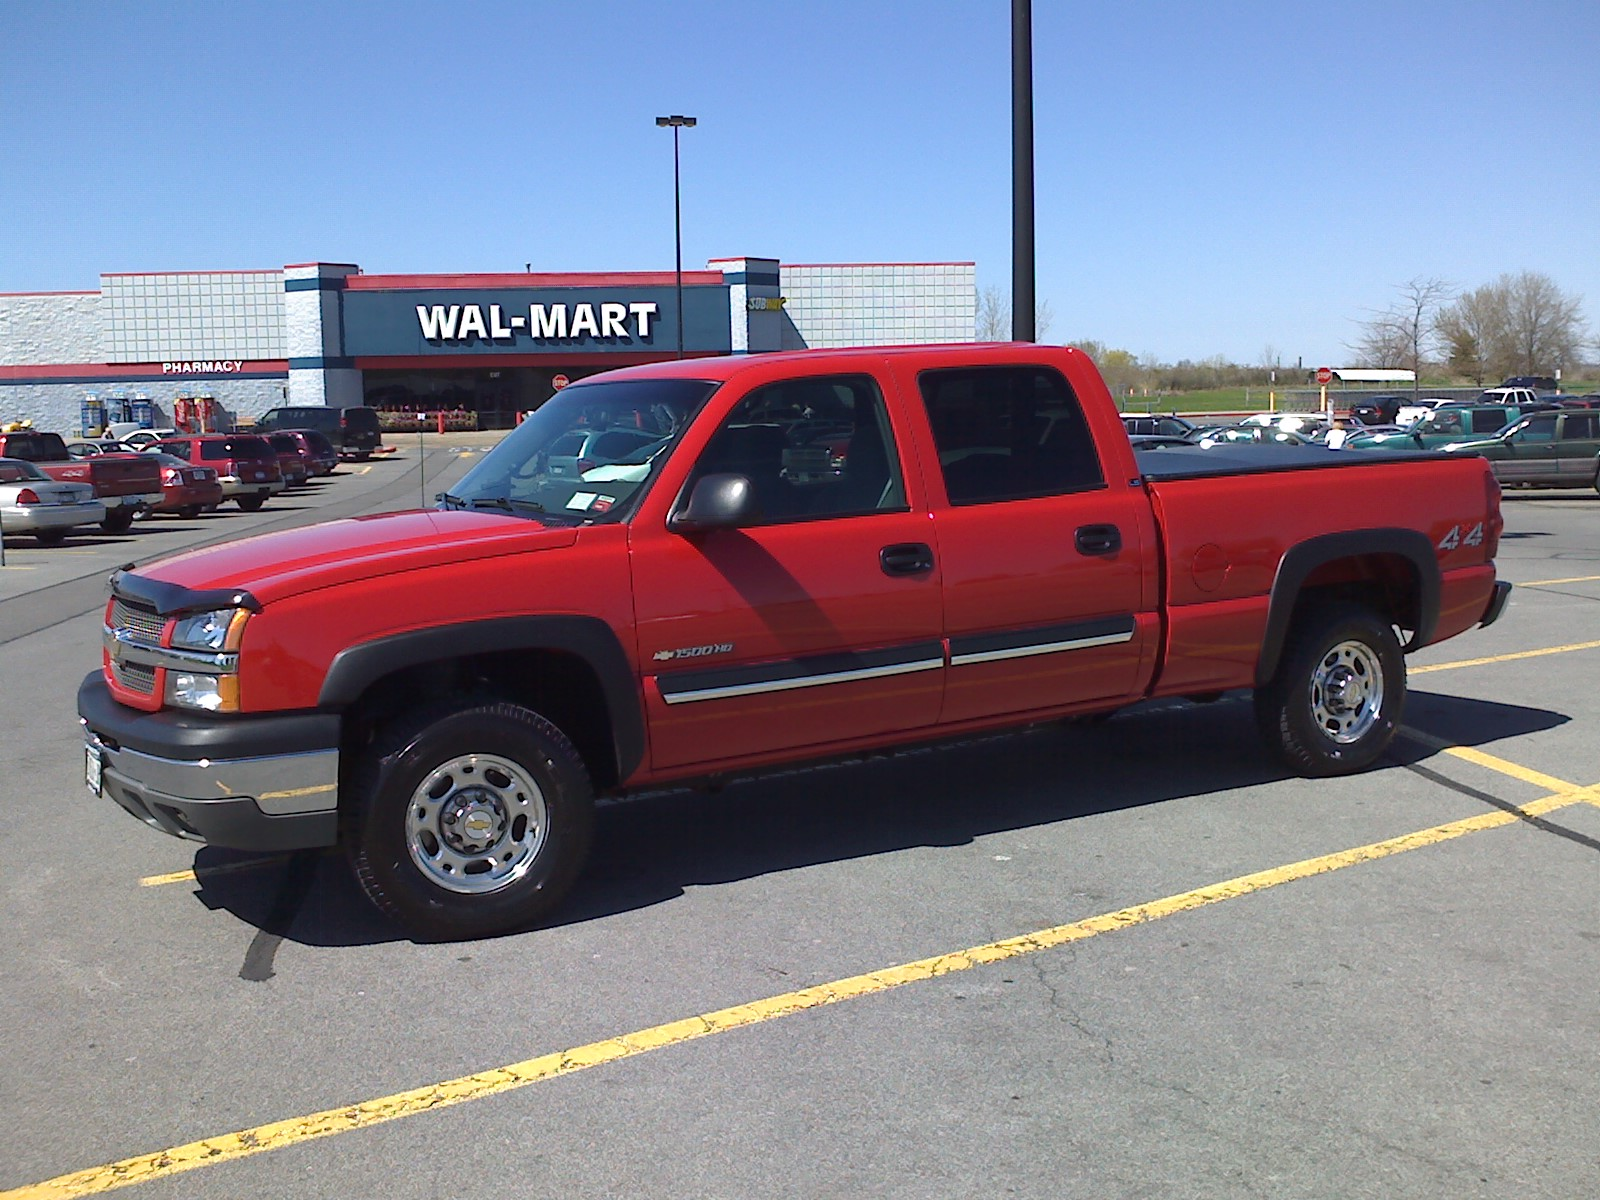 2003 Chevrolet Silverado 1500HD LS Crew Cab Short Bed 4WD picture, exterior